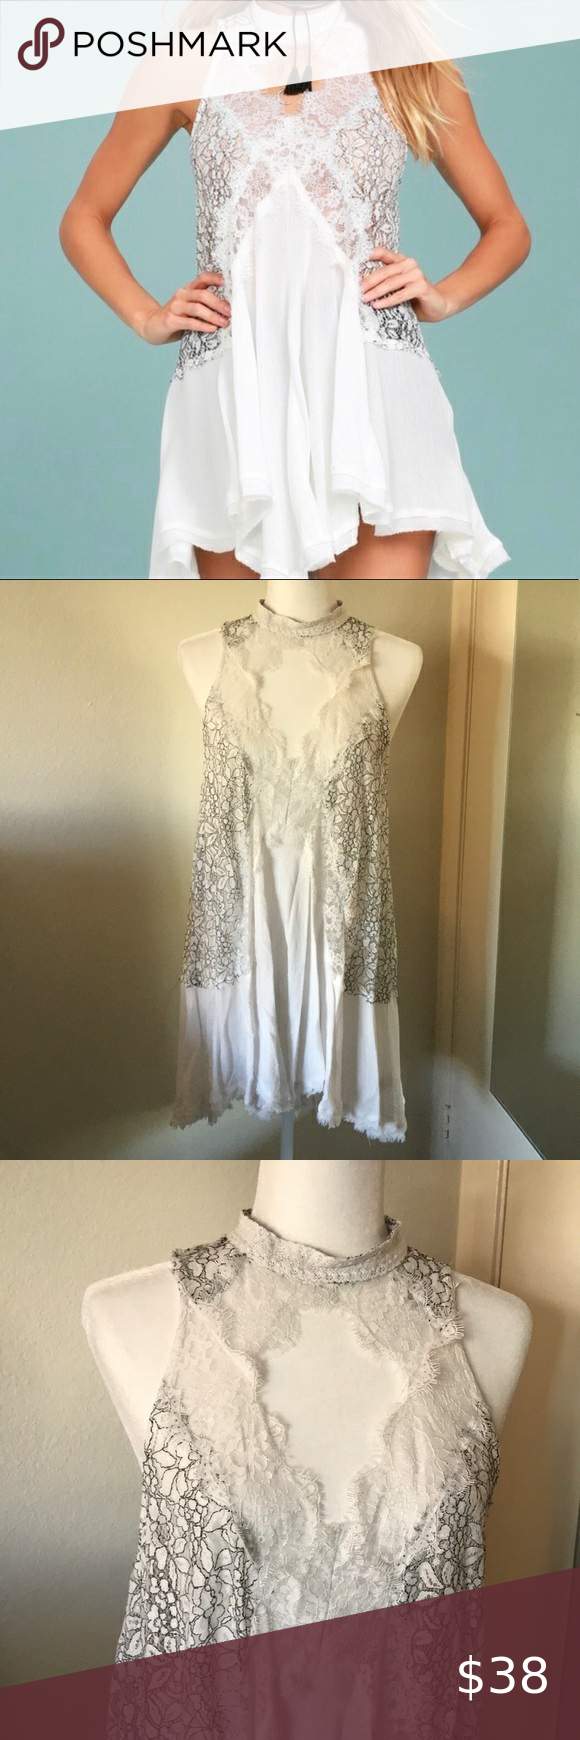 Free People Tell Tale Heart White Lace Slip Dress So Beautiful Worn A Couple Times Excellent Condition Still Looks New Lace Slip Dress Lace Slip White Lace [ 1740 x 580 Pixel ]